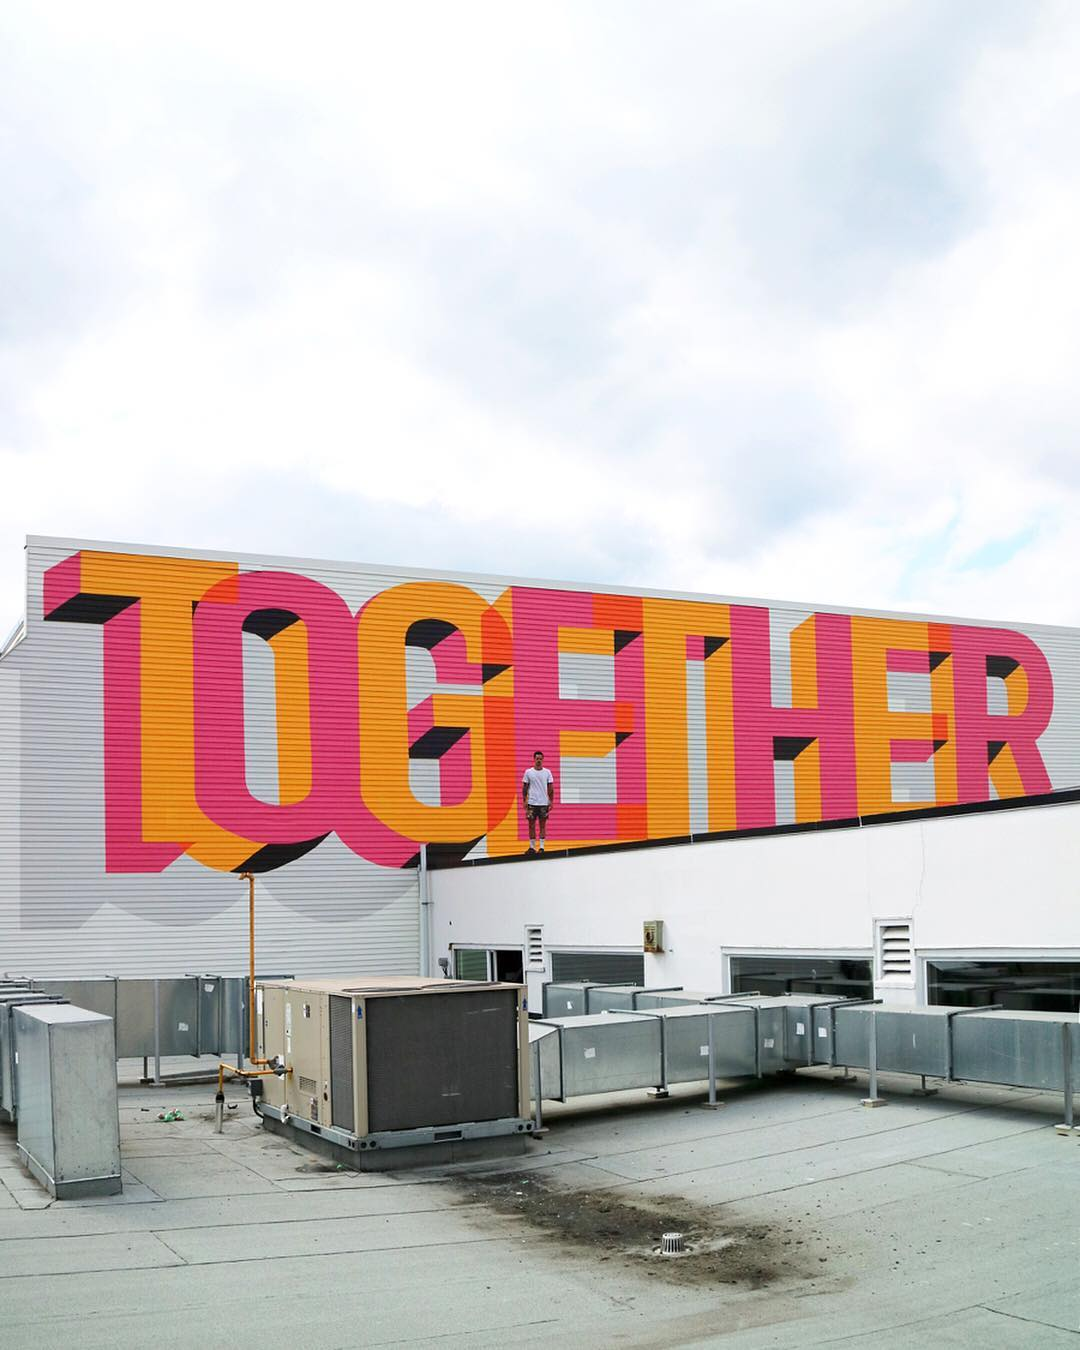 street art idea typography together